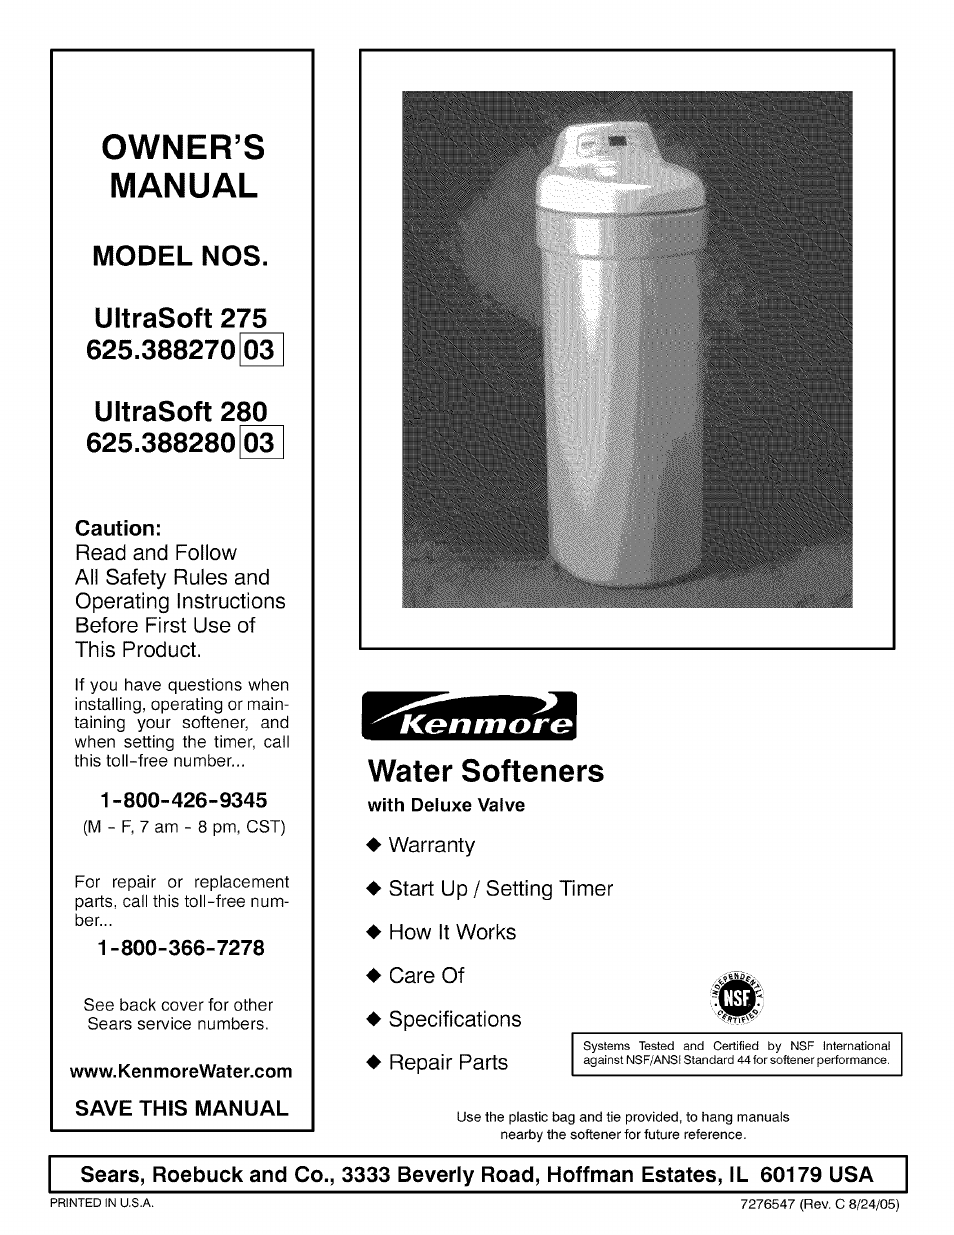 water softener wiring schematic kenmore ultrasoft 280 user manual 36 pages also for ultrasoft 275  kenmore ultrasoft 280 user manual 36